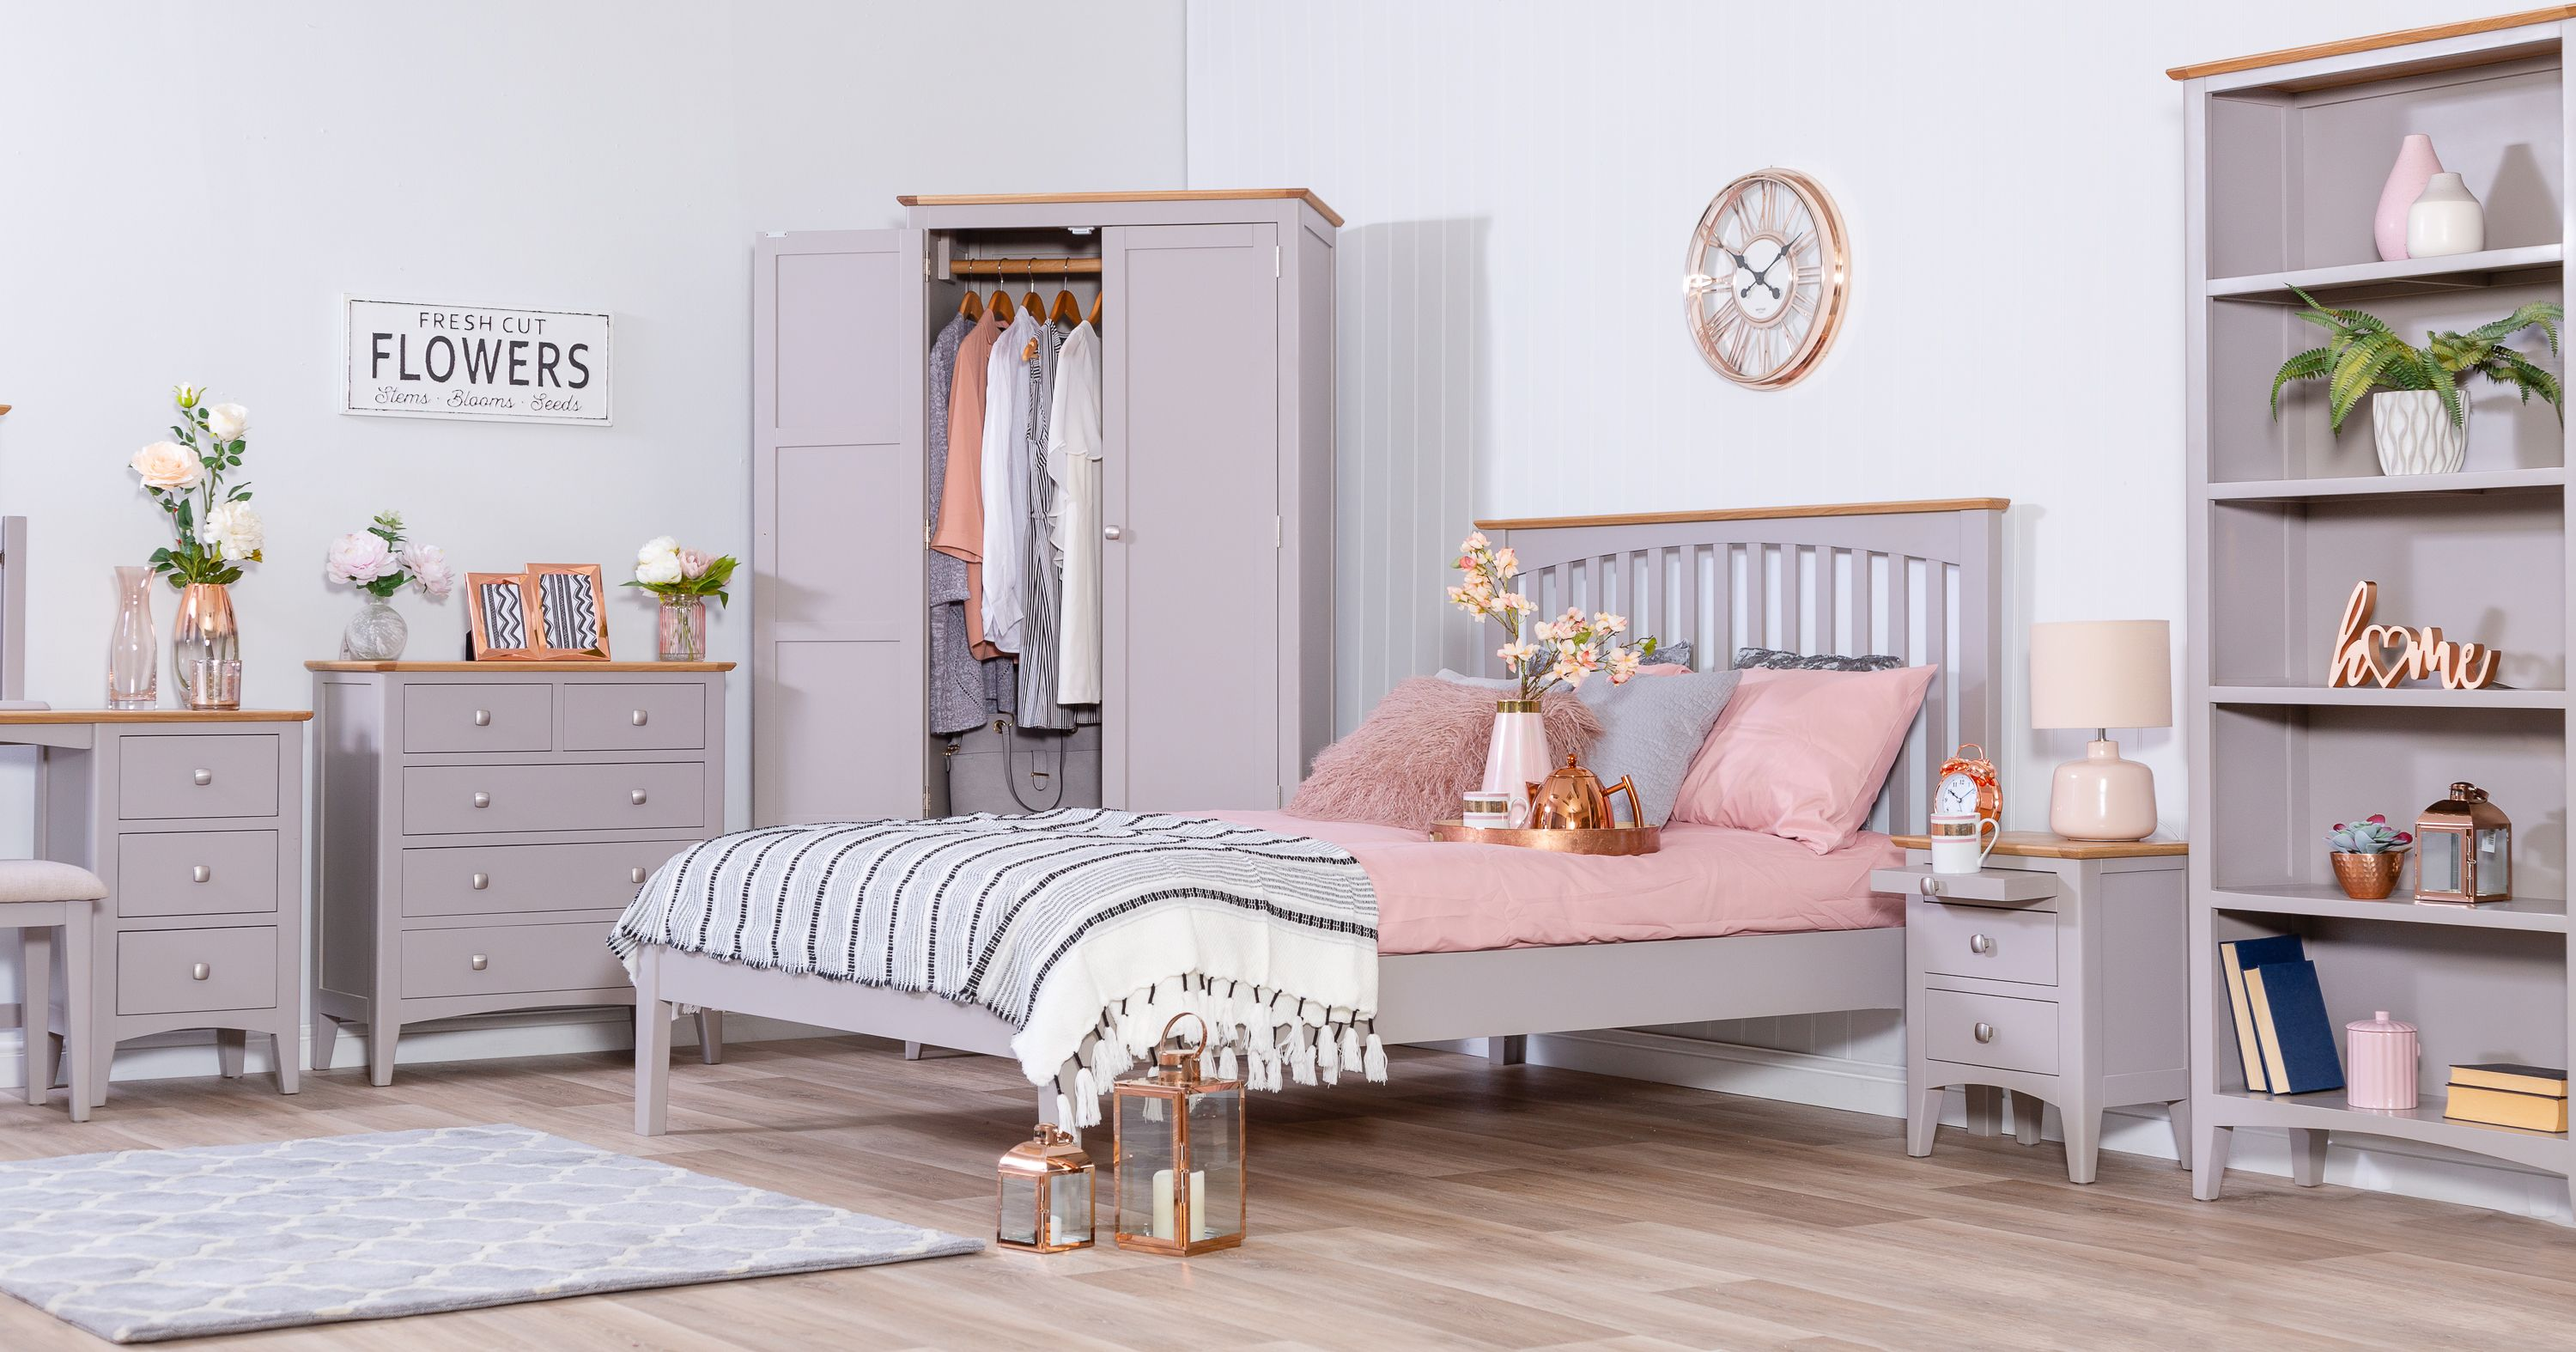 Chilternoak Available For The Bedroom Living Room And Dining Room You Ll Be Spoilt For Choice When Choosing Whic Gorgeous Furniture Home Bedroom Grey Bedding